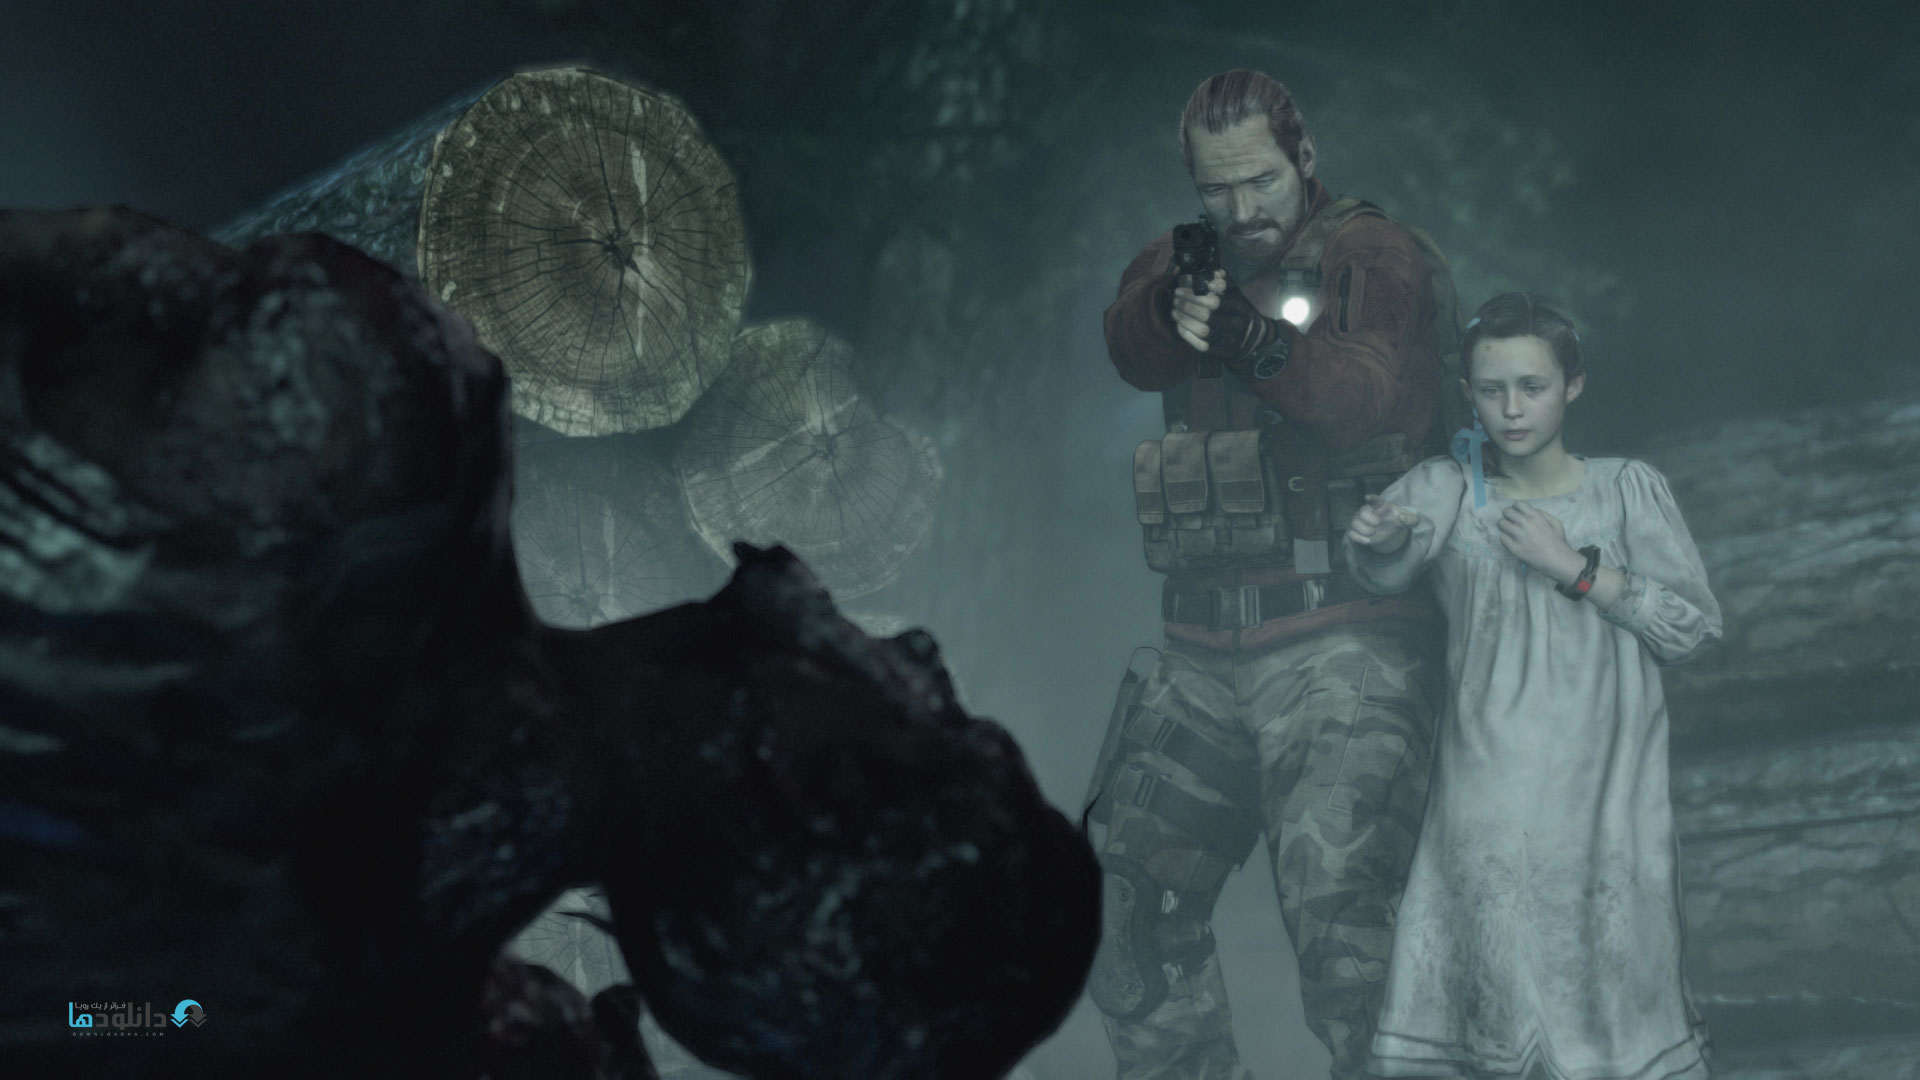 http://img5.downloadha.com/hosein/Game/February%202015/25/Resident-Evil-Revelations-2-Episode-1-screenshots-03-large.jpg